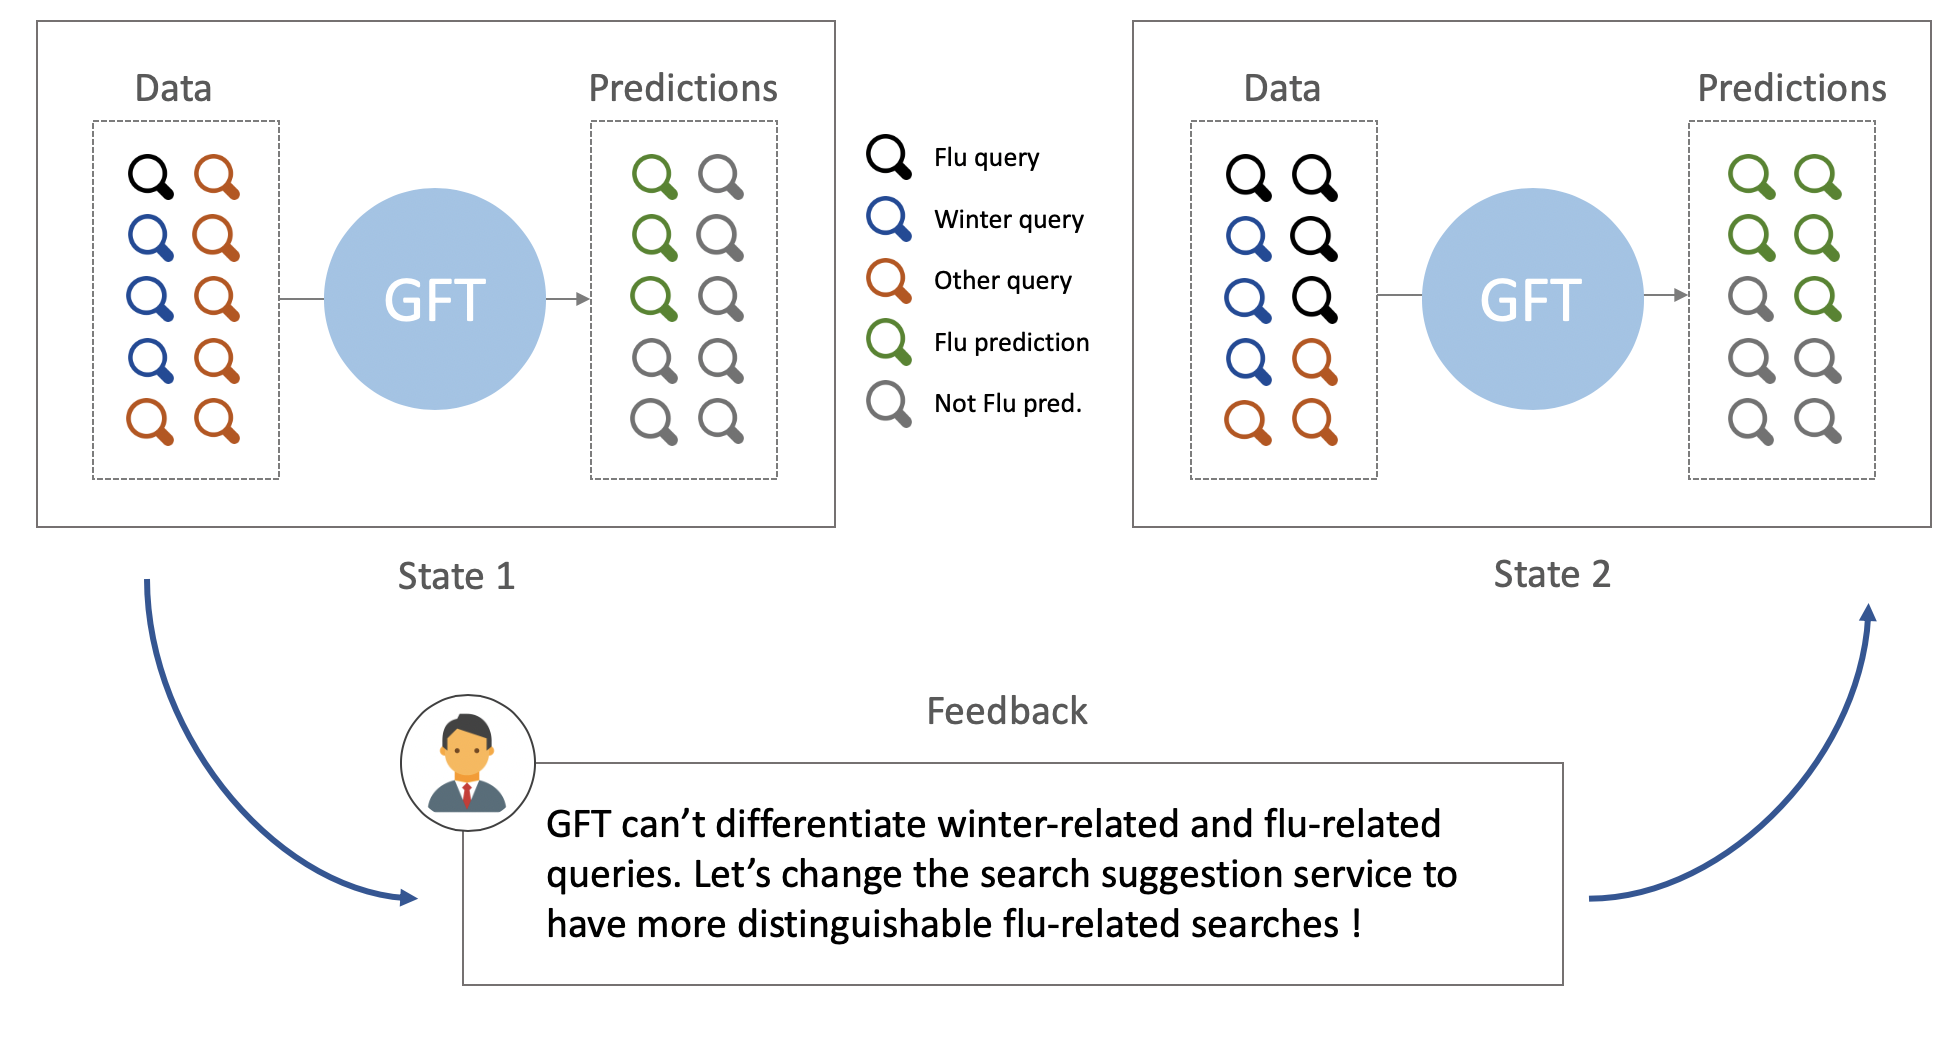 Google Flu Trend feedback loop illustration